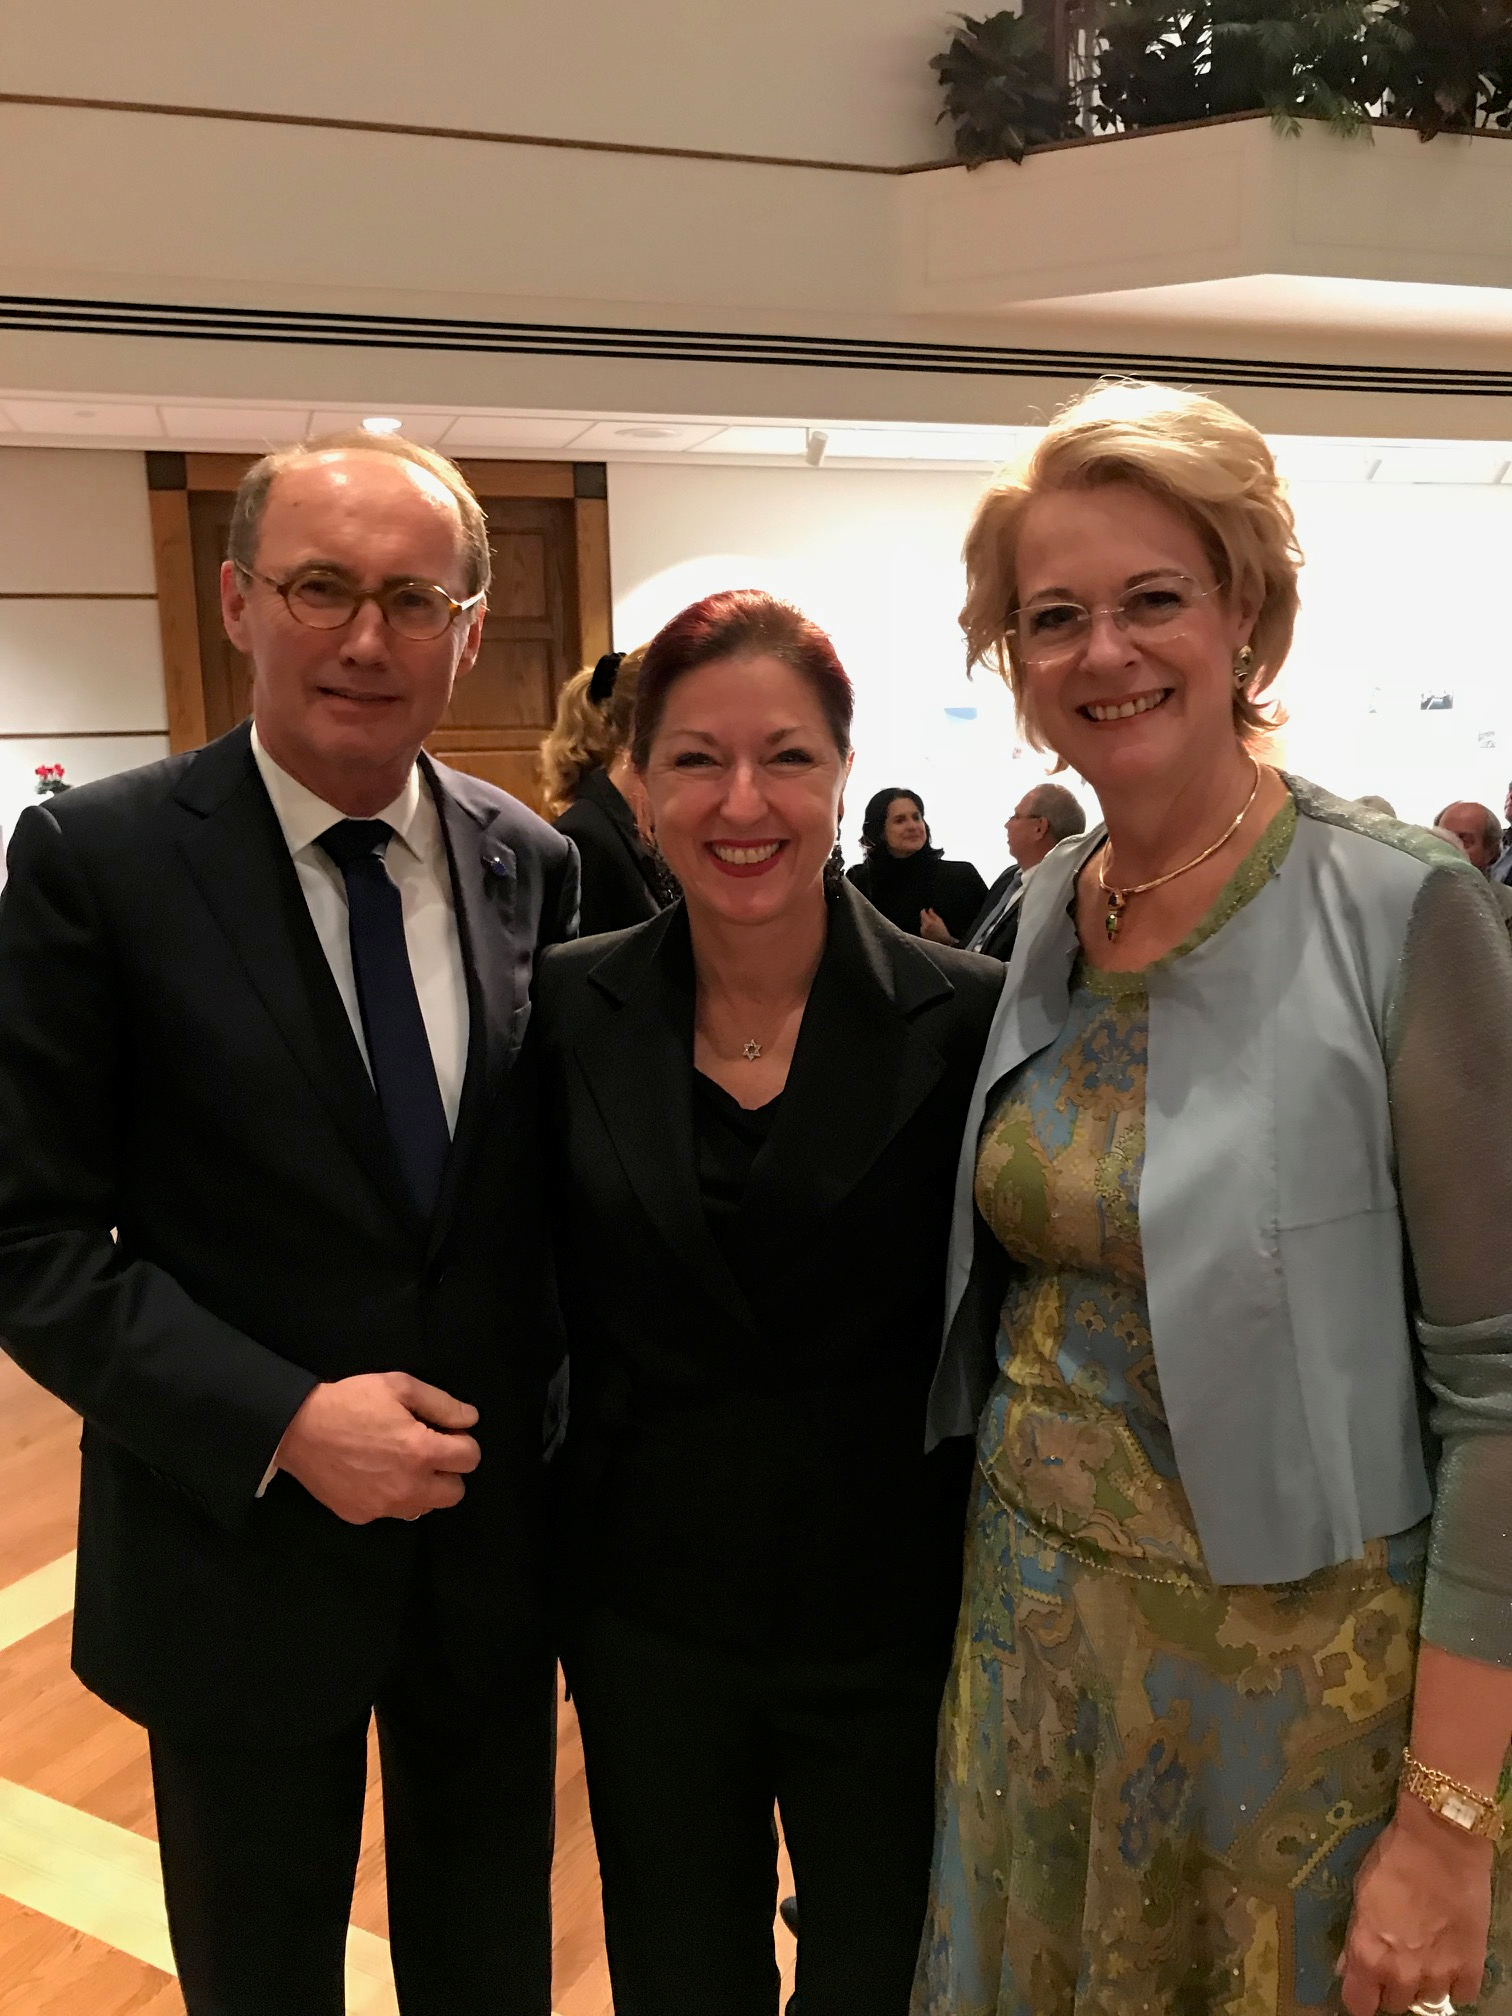 With Othmar and Christa Karas